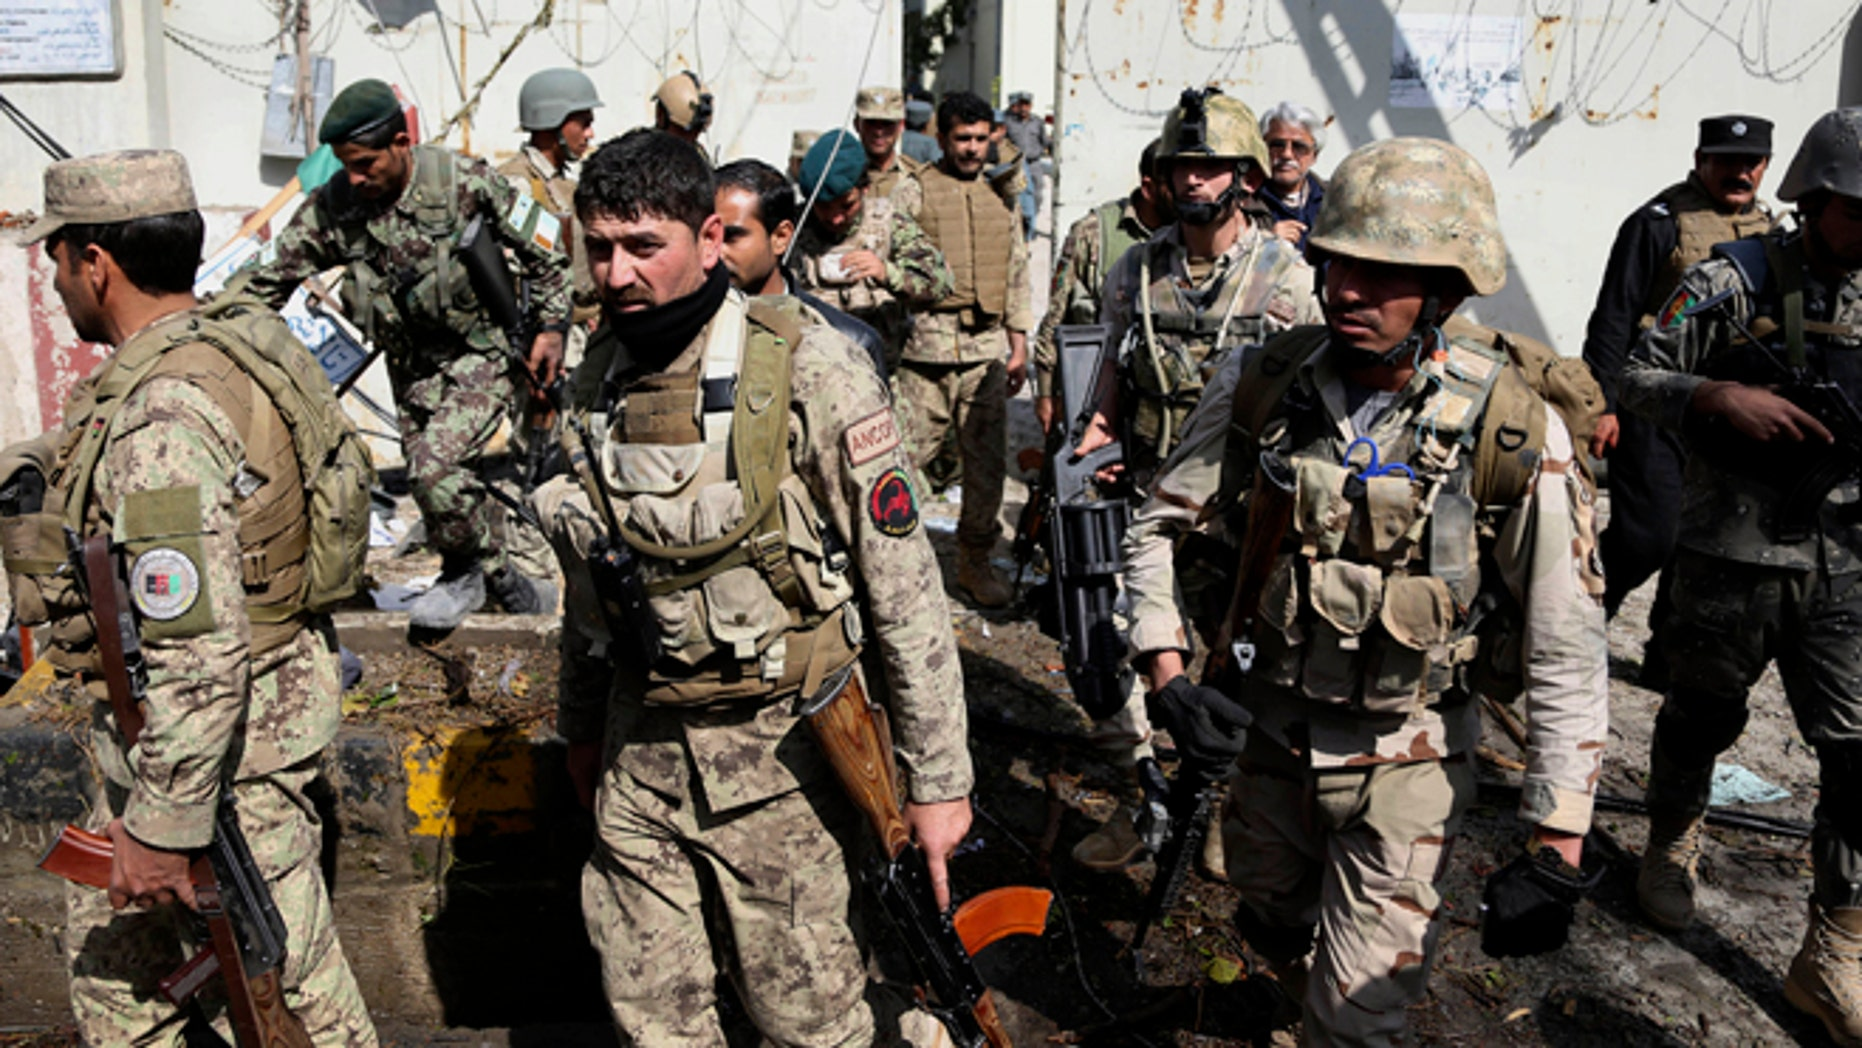 March 20, 2014: Afghan Army and police search through a police station after the Taliban staged a multi-pronged attack on a police station in Jalalabad, eastern Afghanistan.